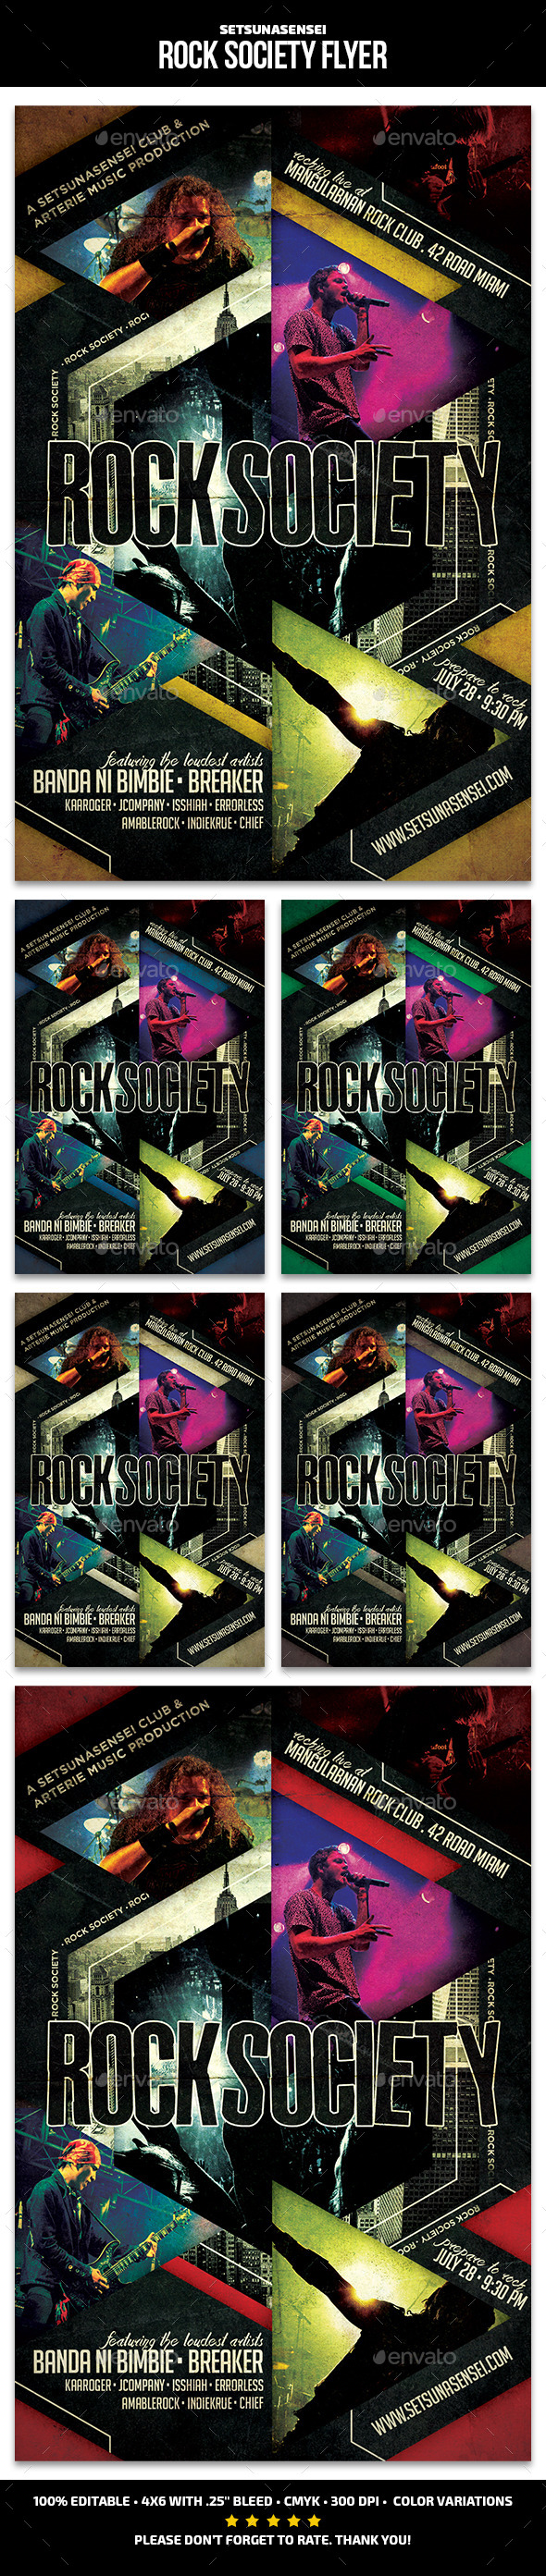 Rock Society Flyer - Concerts Events